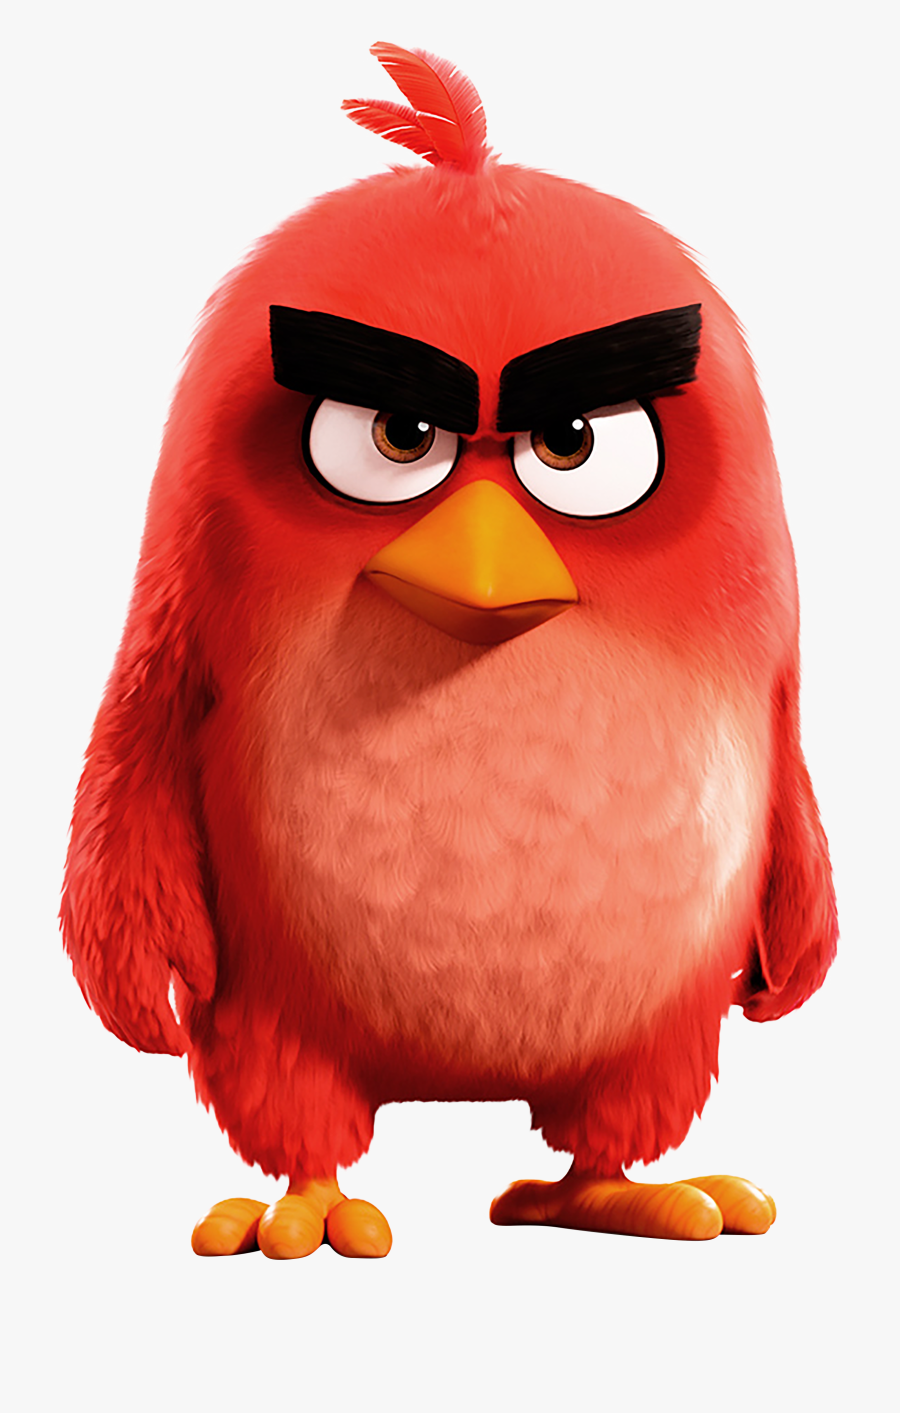 Anger Clipart Wallpapers - Red Angry Birds 2, Transparent Clipart